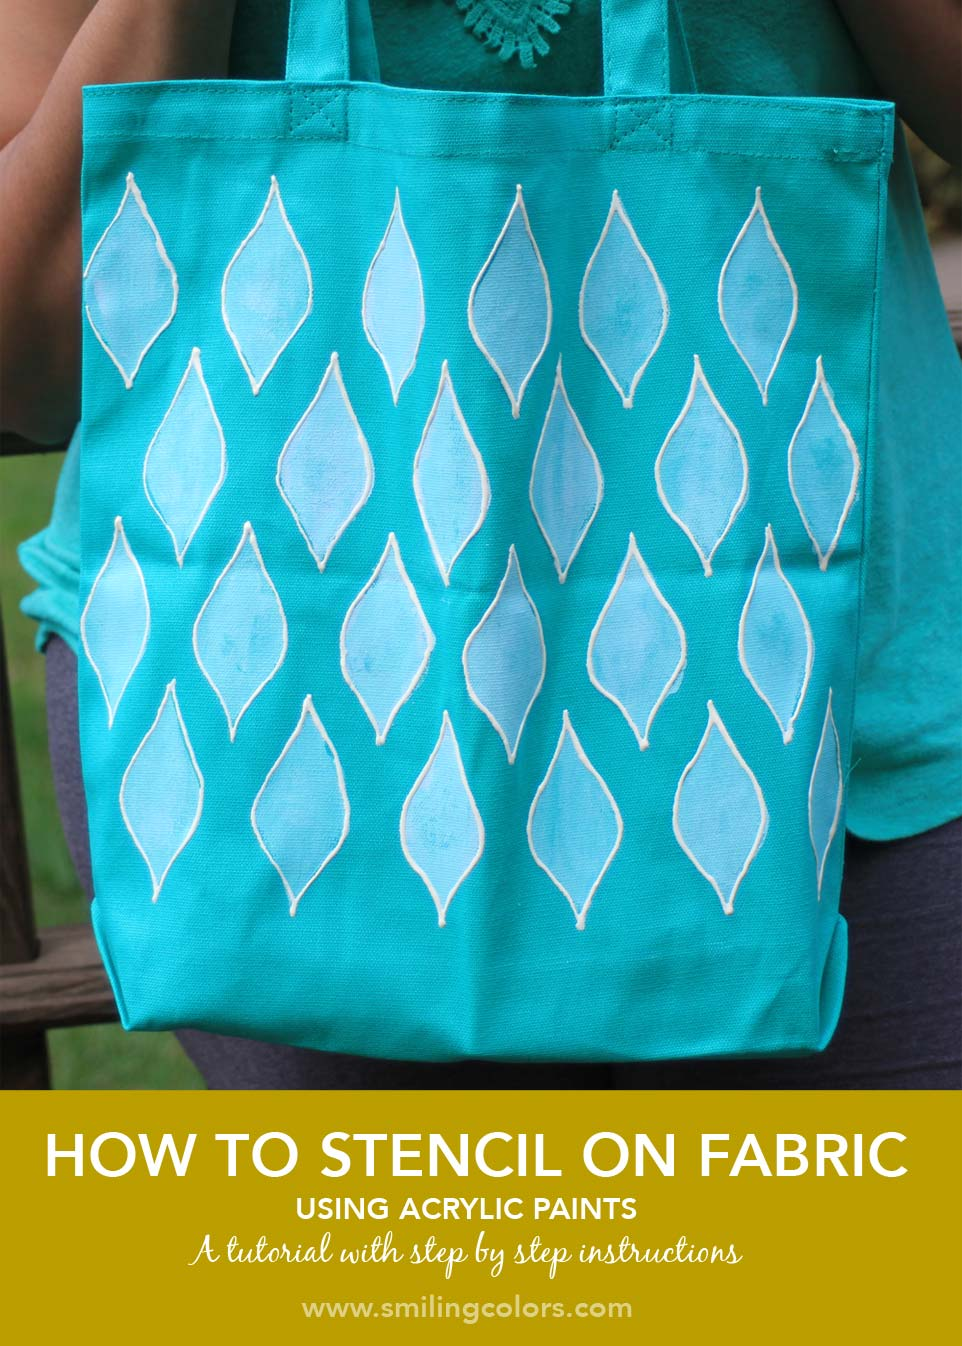 How to stencil on fabric with acrylic paints Smitha Katti